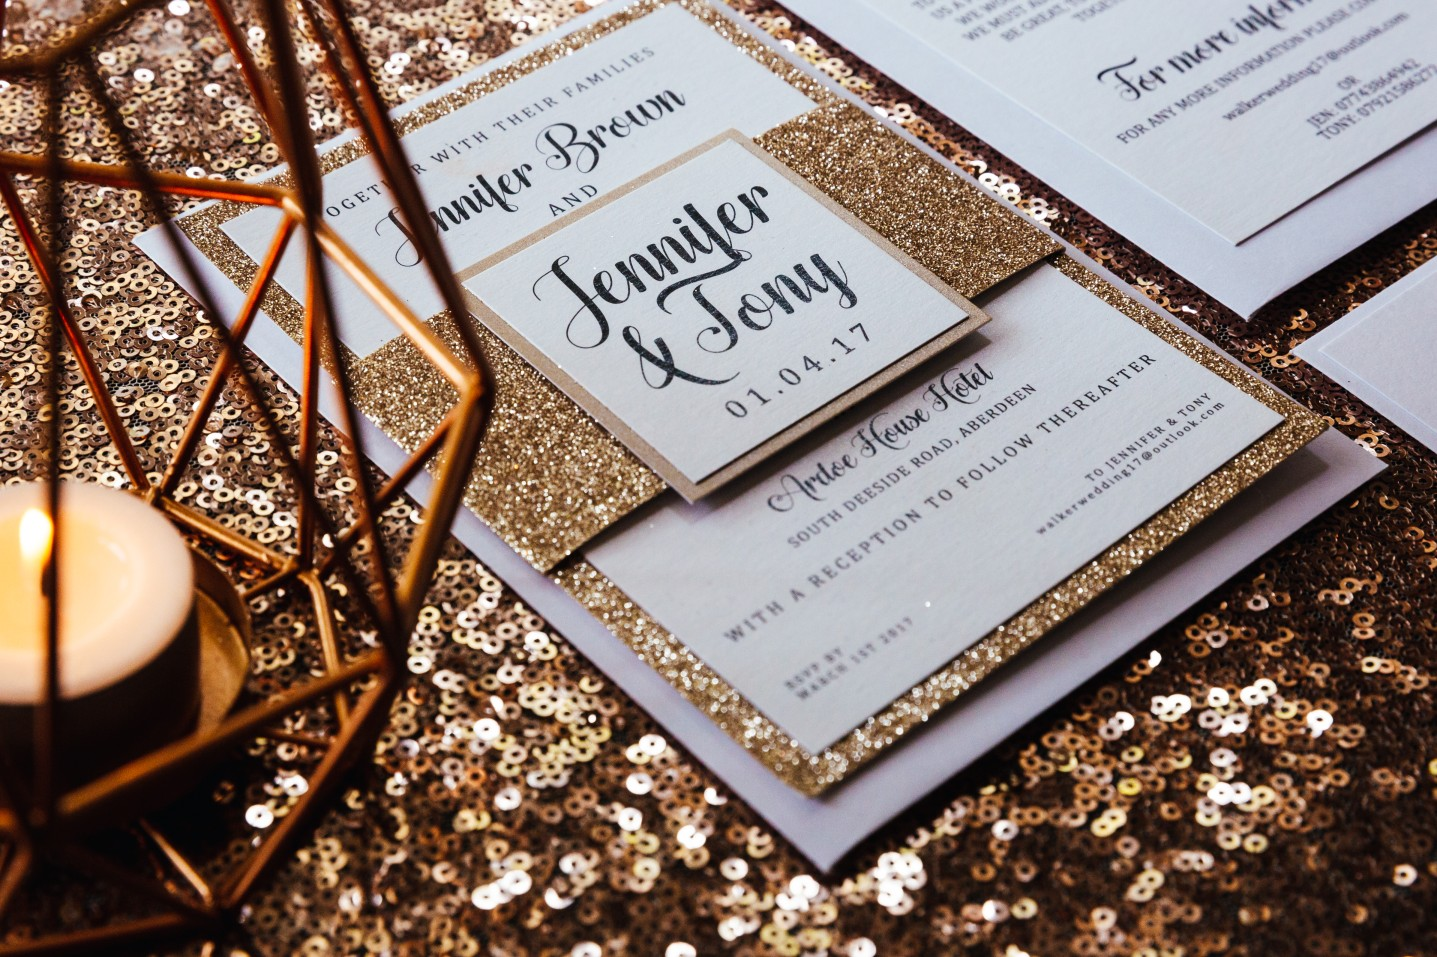 choosing your wedding stationery - unique wedding stationery - quirky wedding stationery -alternative wedding stationery - elegant wedding stationery- alternative wedding directory - alternative weddings- gold wedding invitations - sparkly wedding invitations